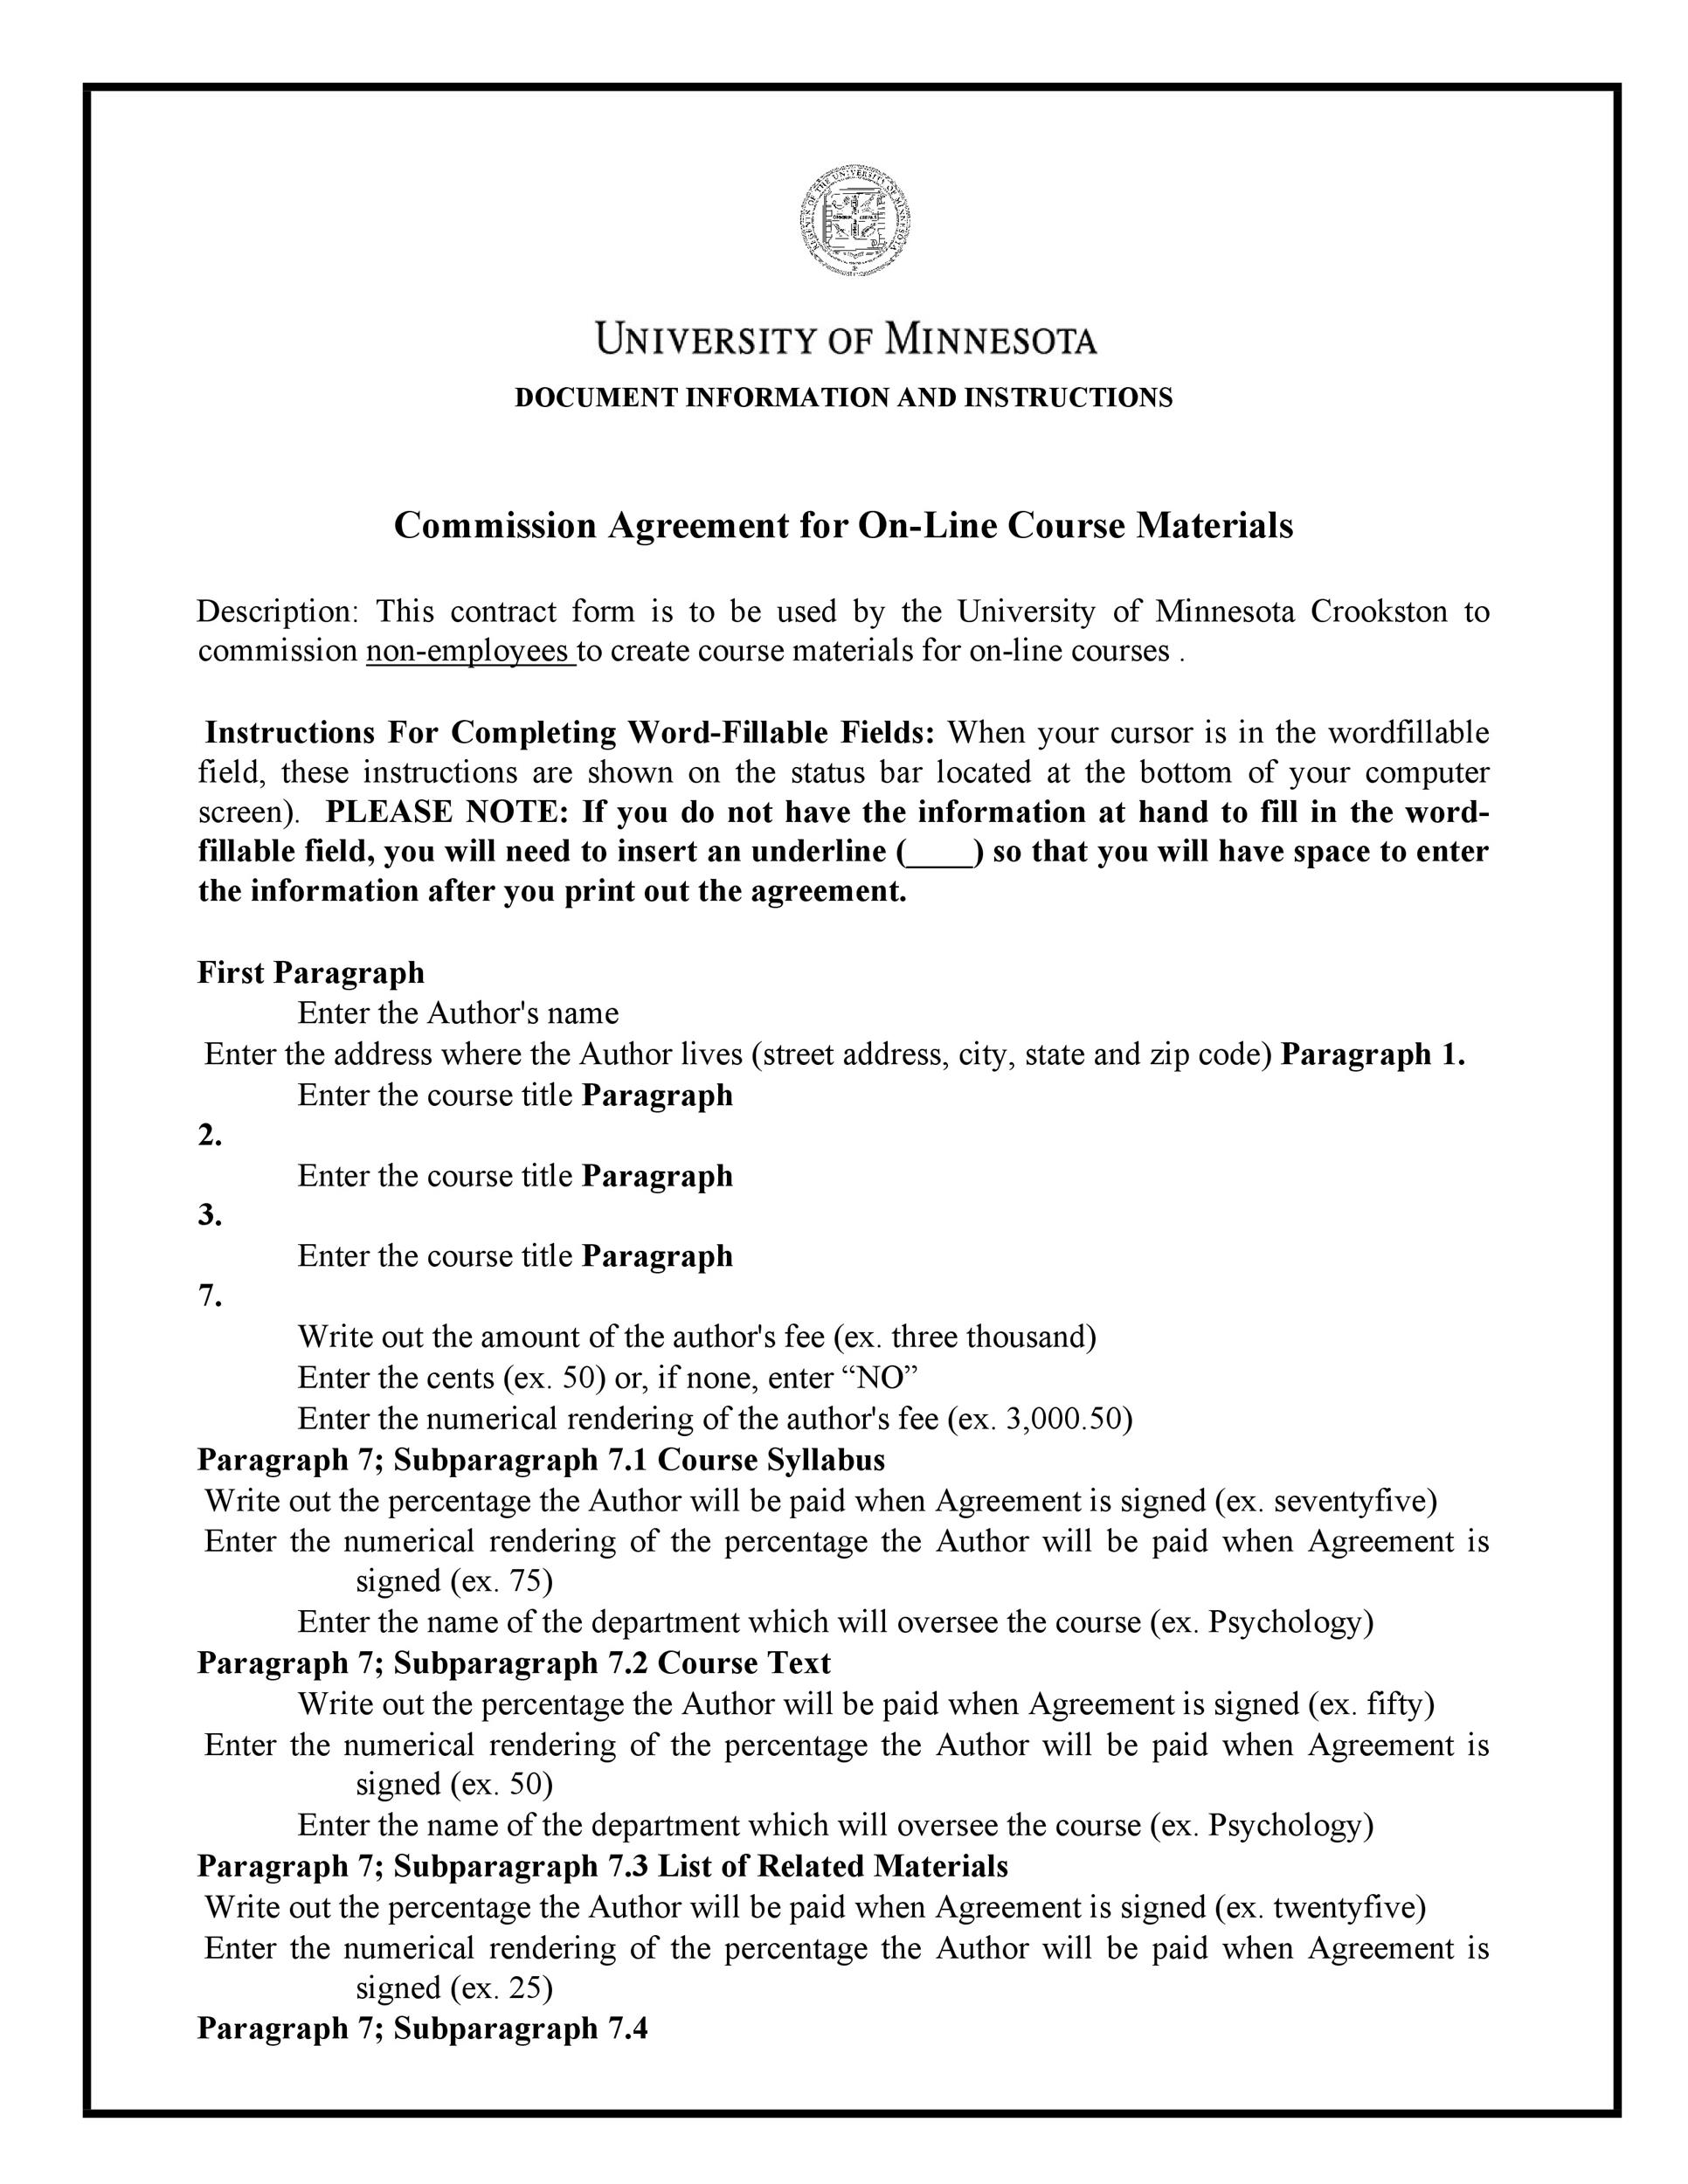 Free Commission Agreement Template 22